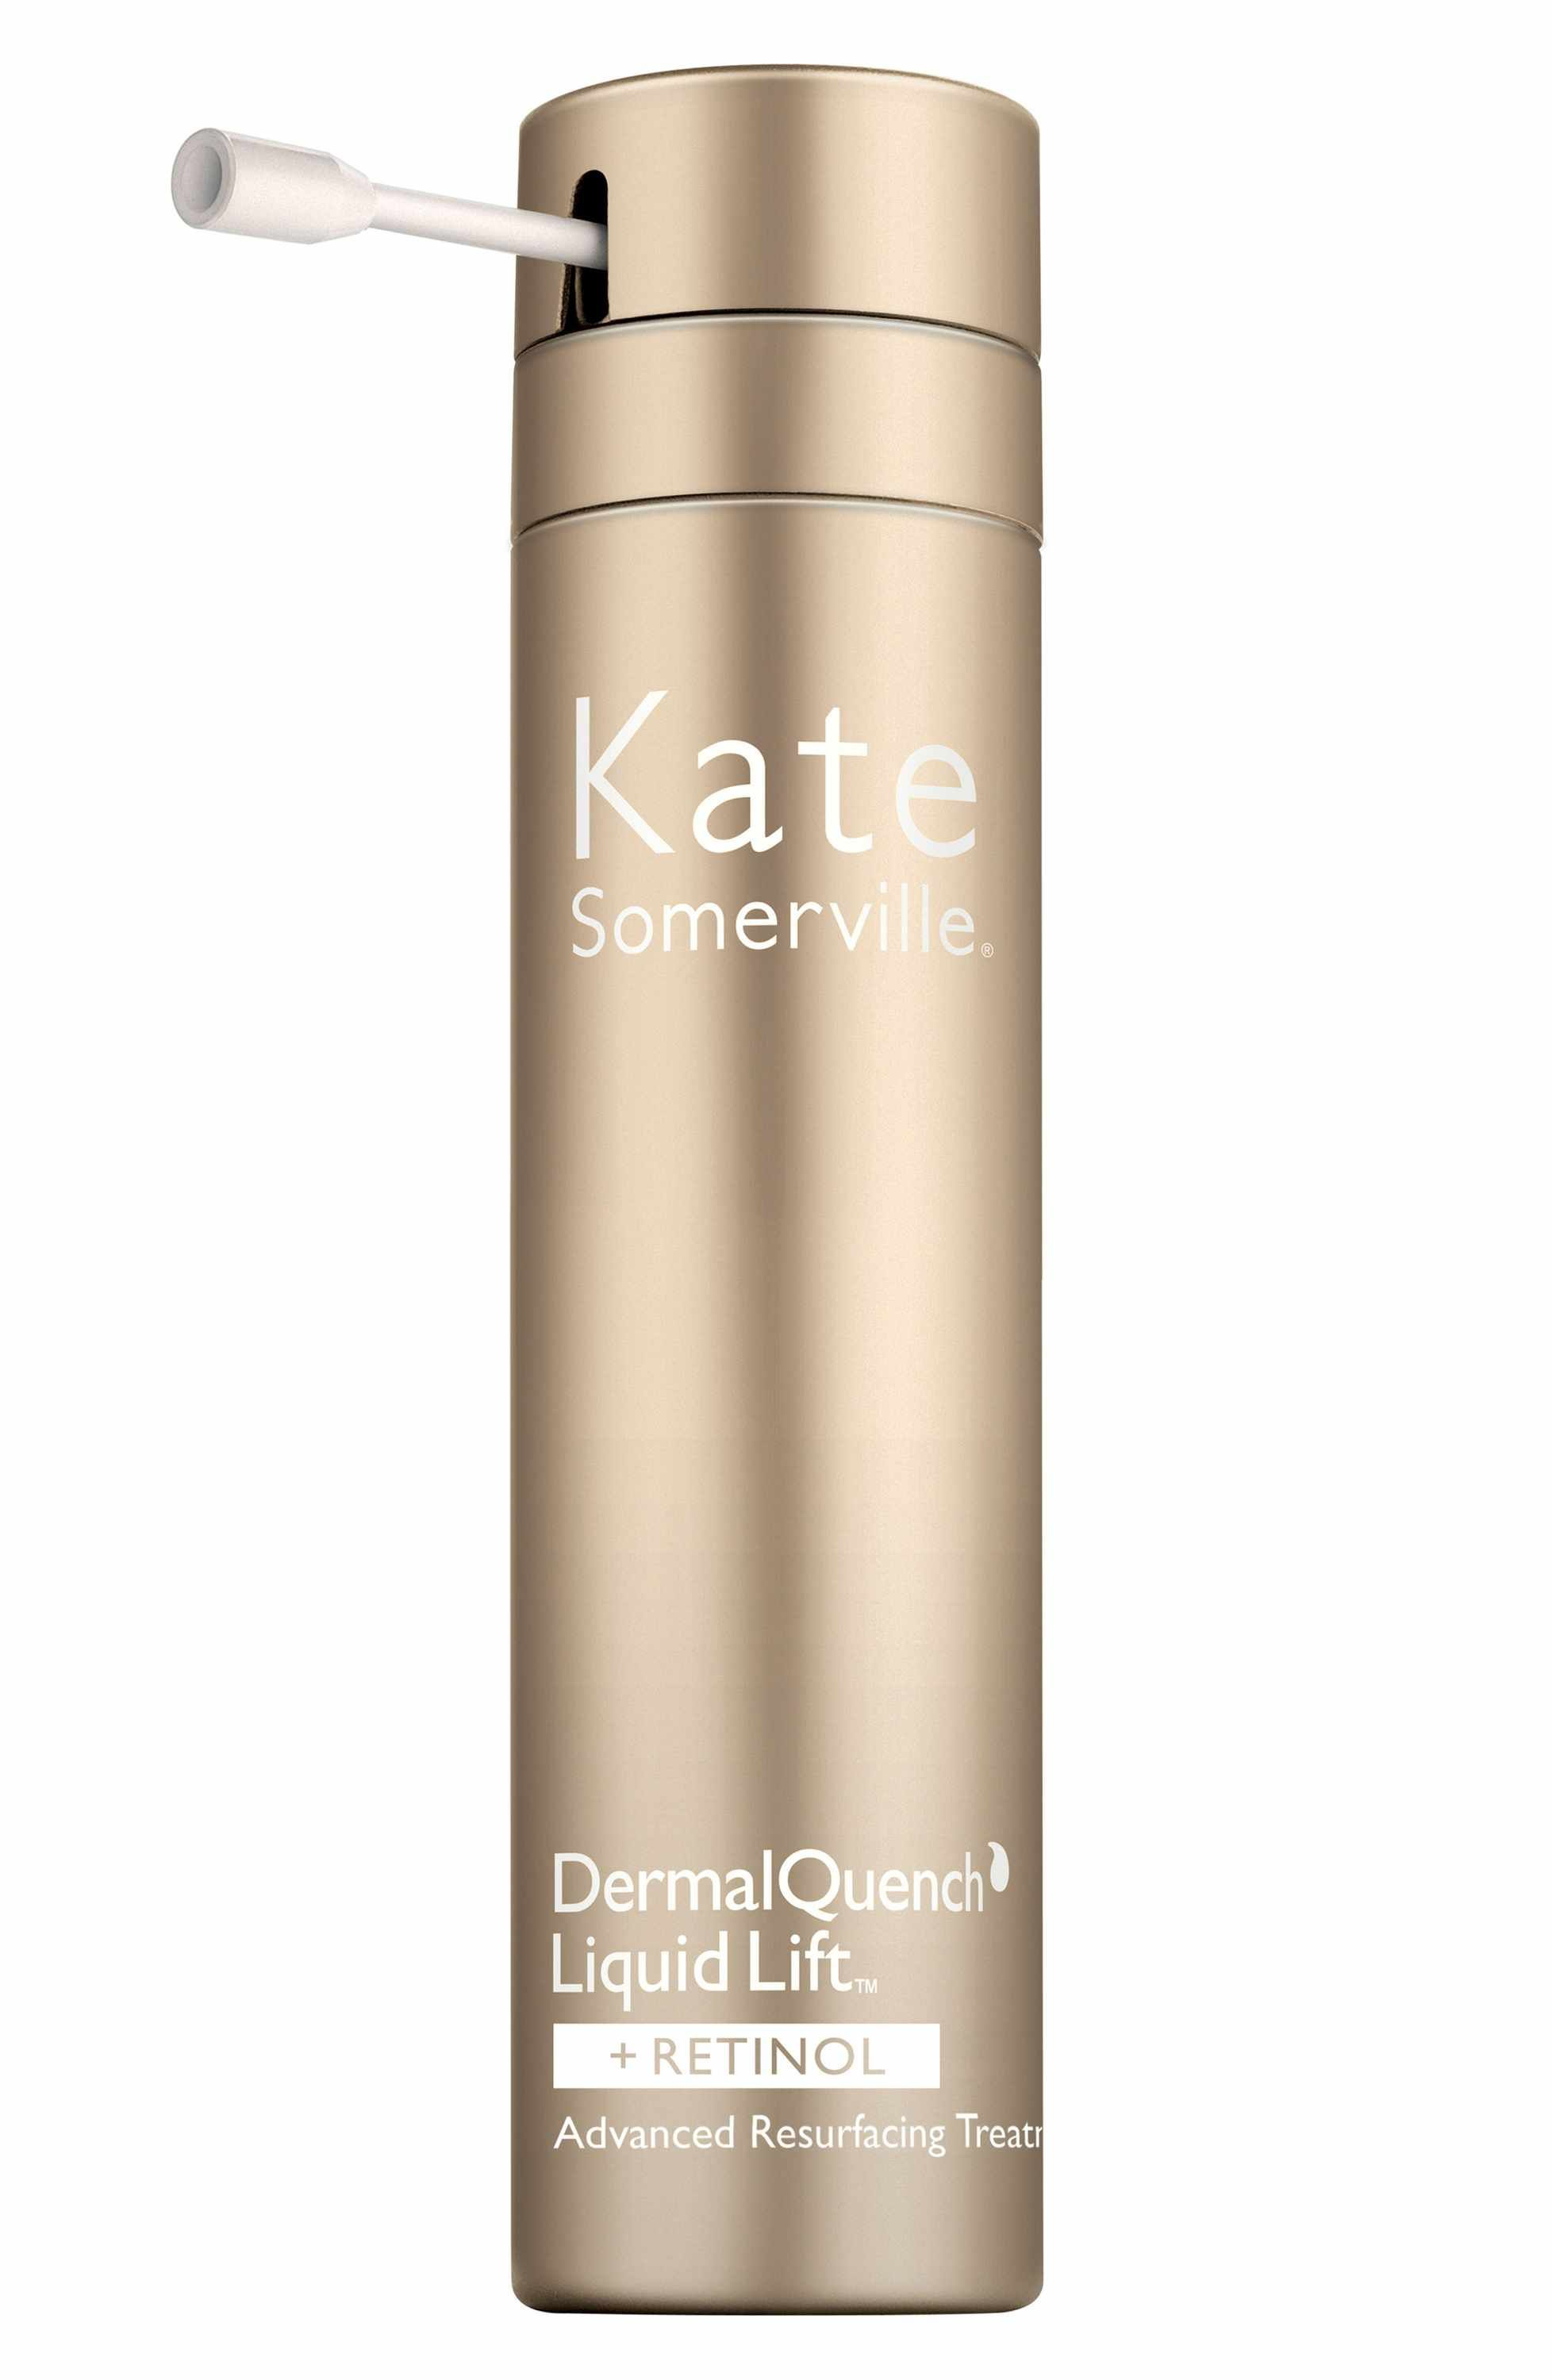 Main image kate somerville dermalquench liquid lift retinol